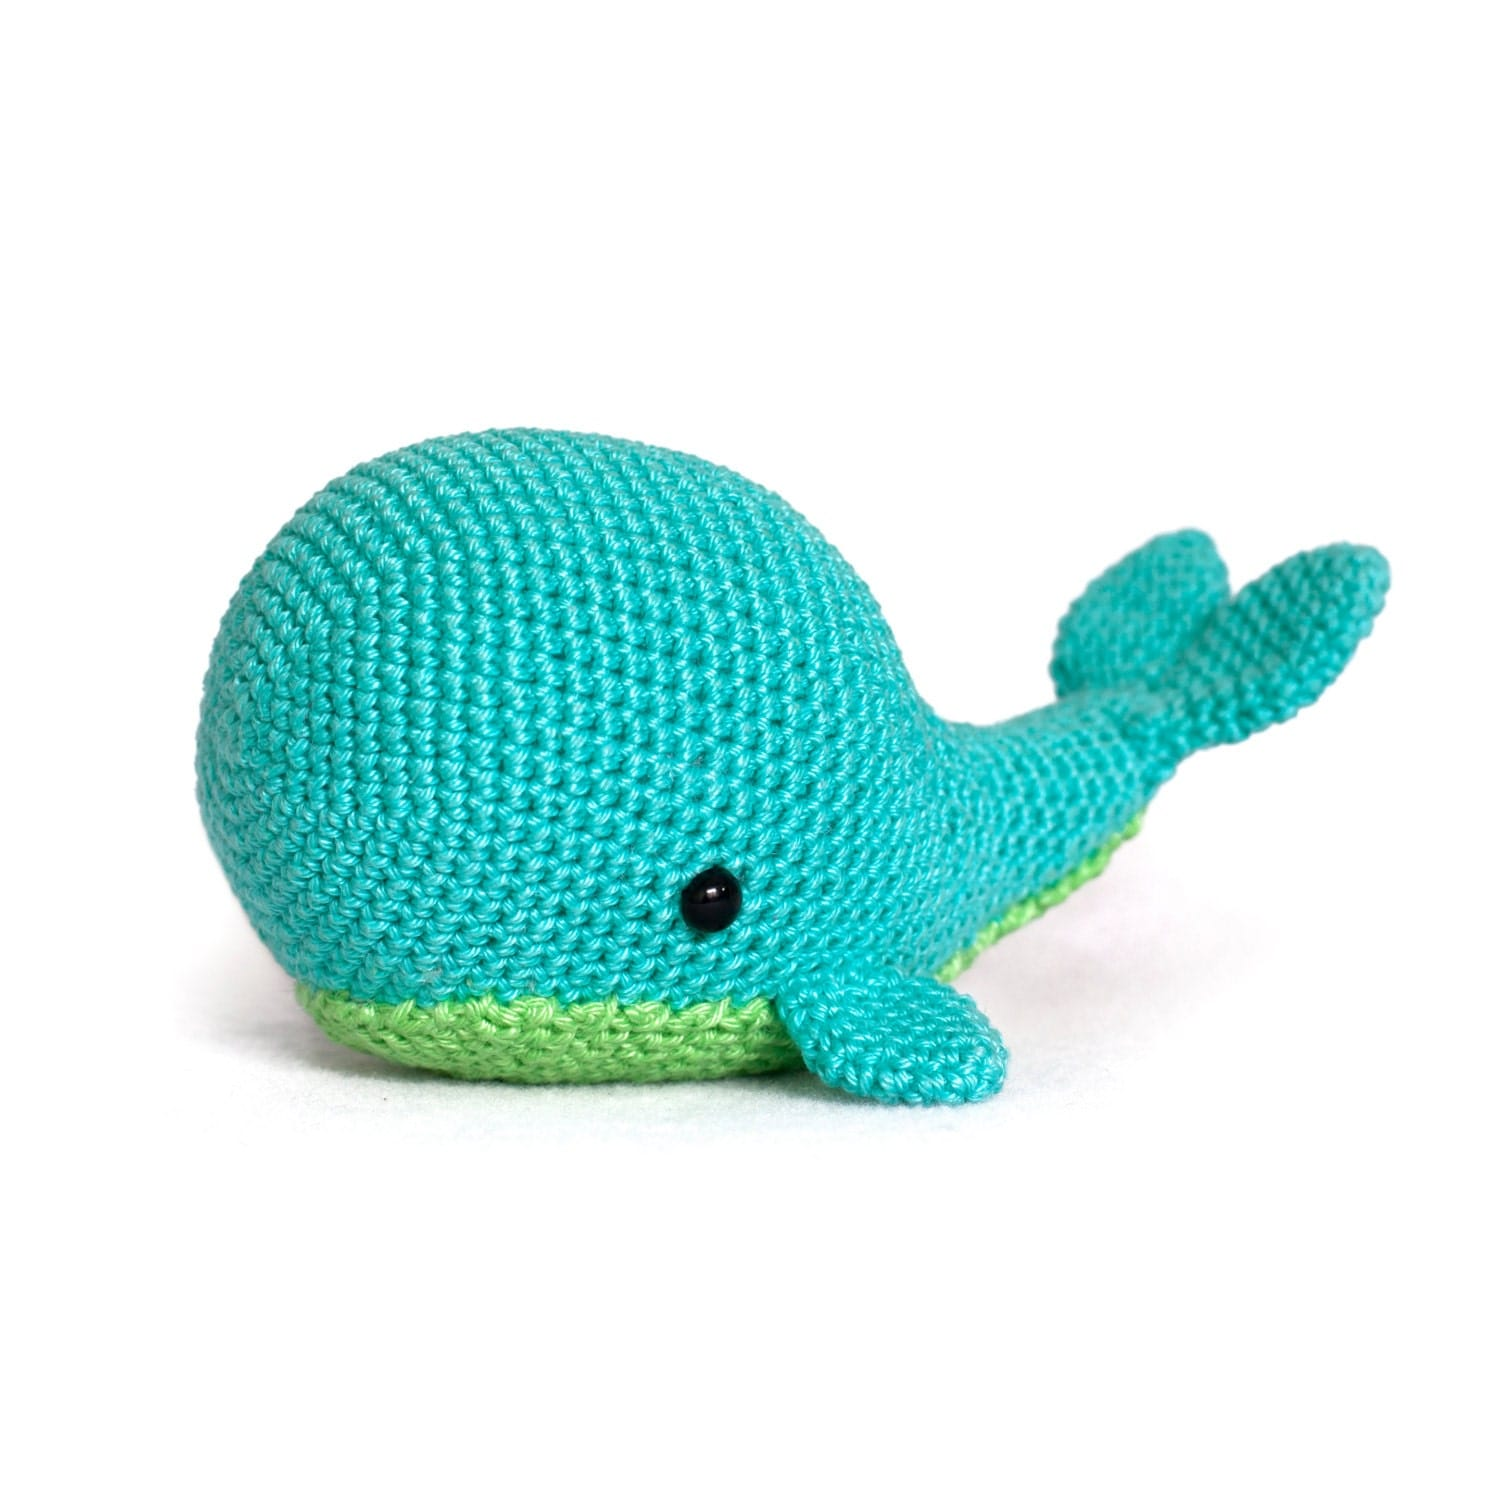 Amigurumi Today Whale : Amigurumi patterns for babies slugom